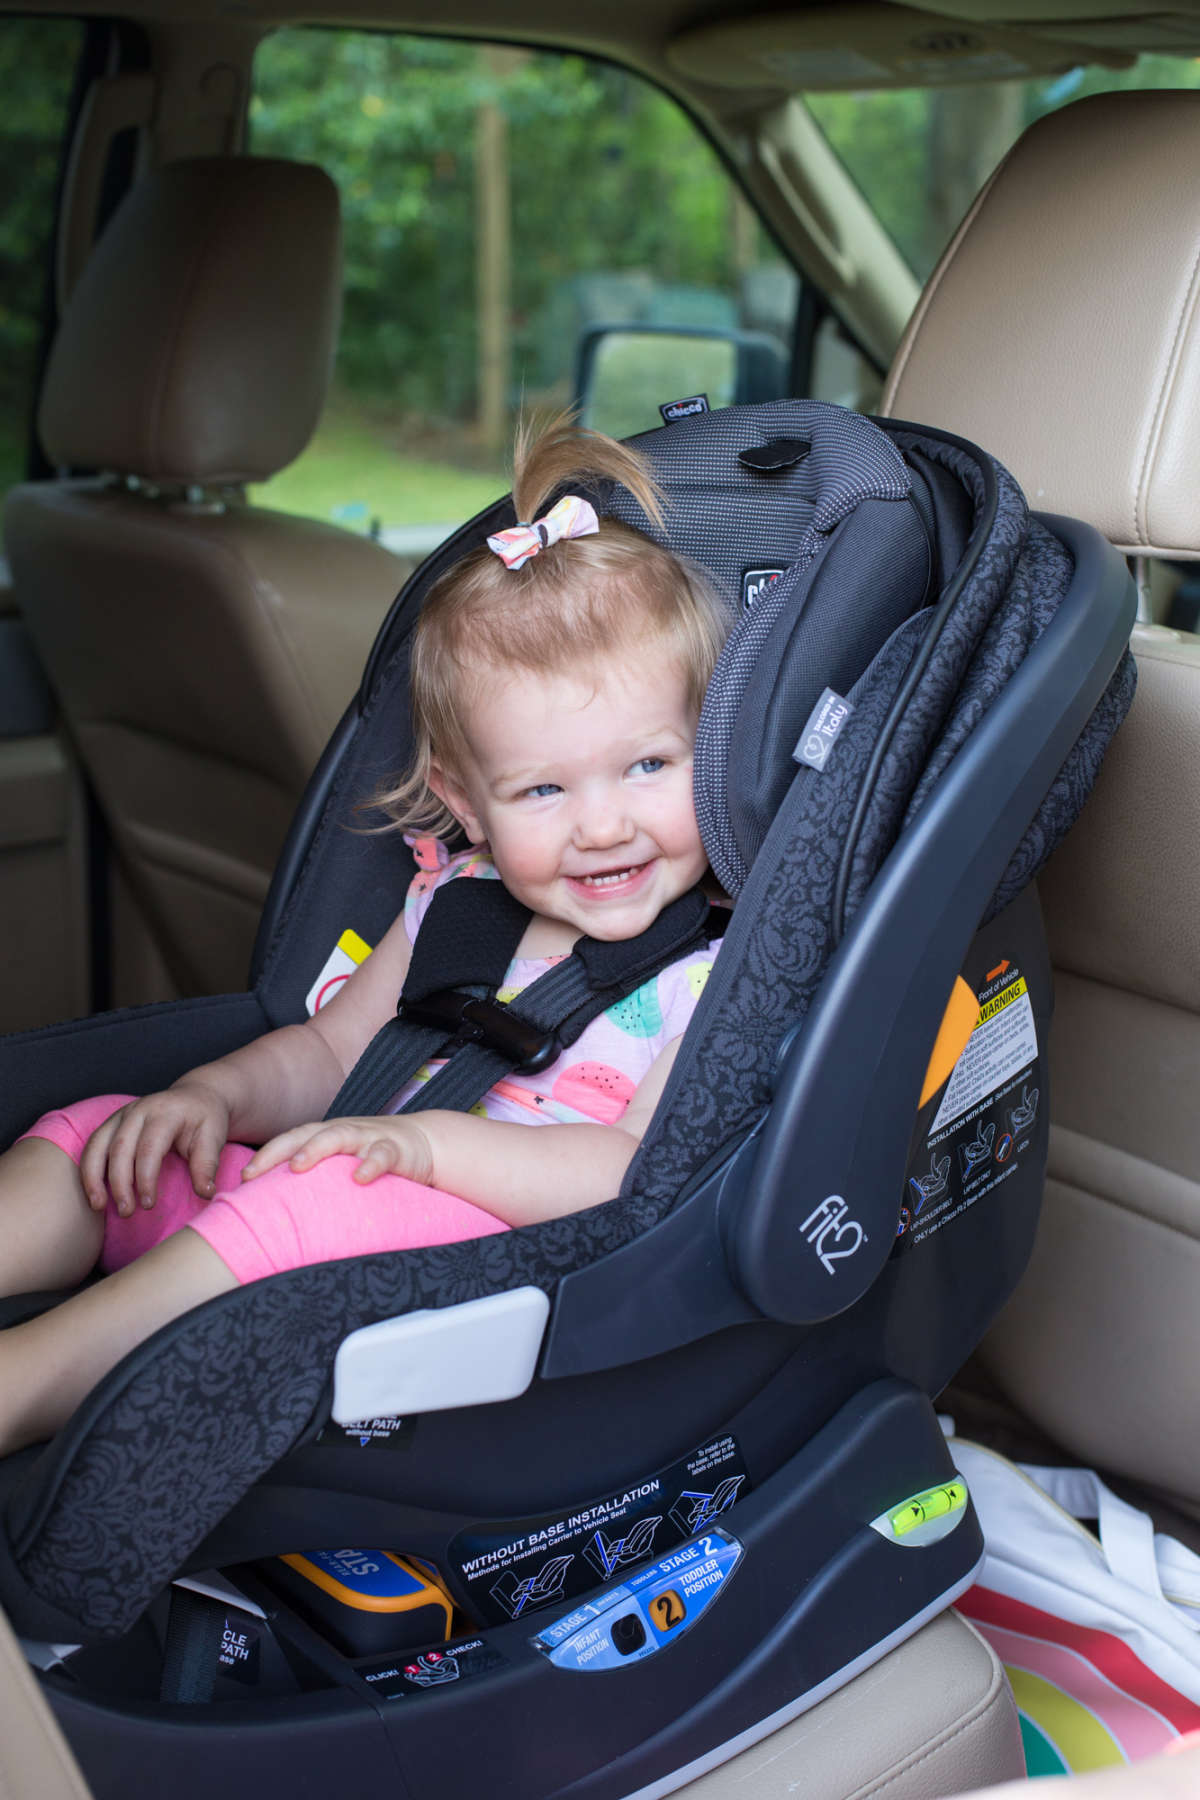 The Fit2 Car Seat That Lasts Until Baby Is 2 Lay Baby